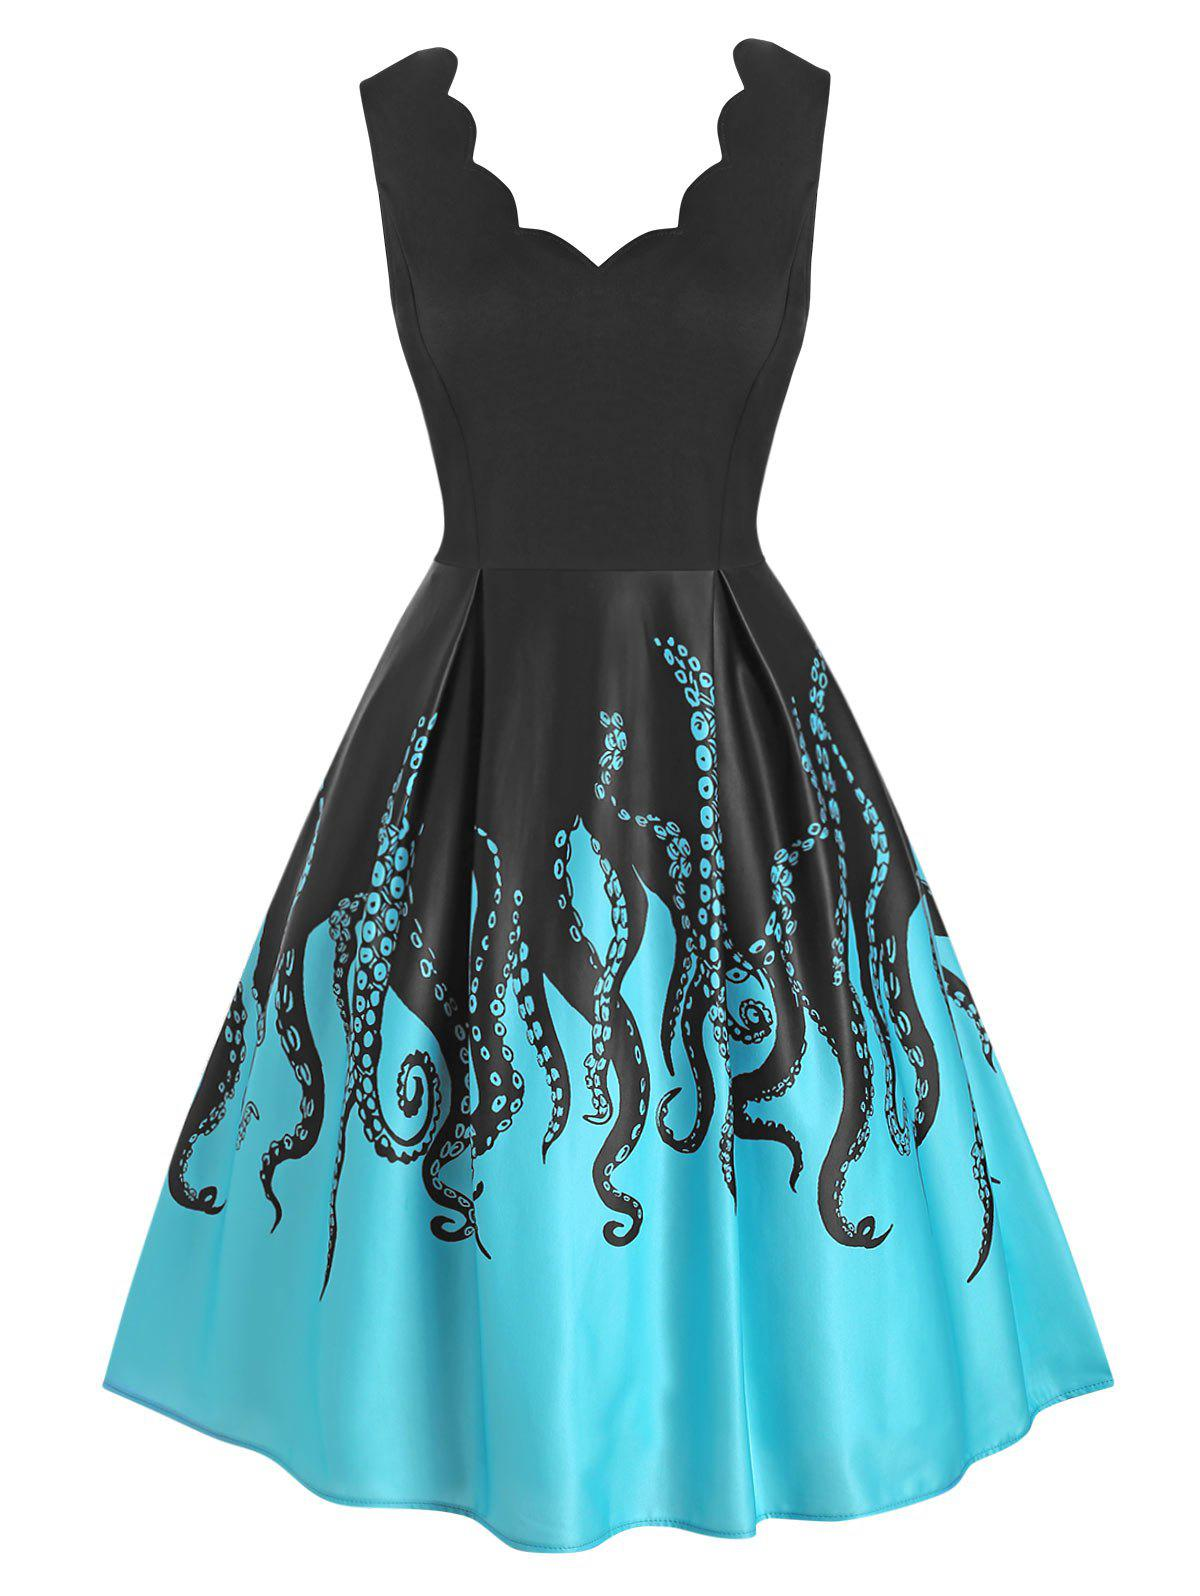 Octopus Print Scalloped V Neck Sleeveless Dress - MACAW BLUE GREEN 2XL